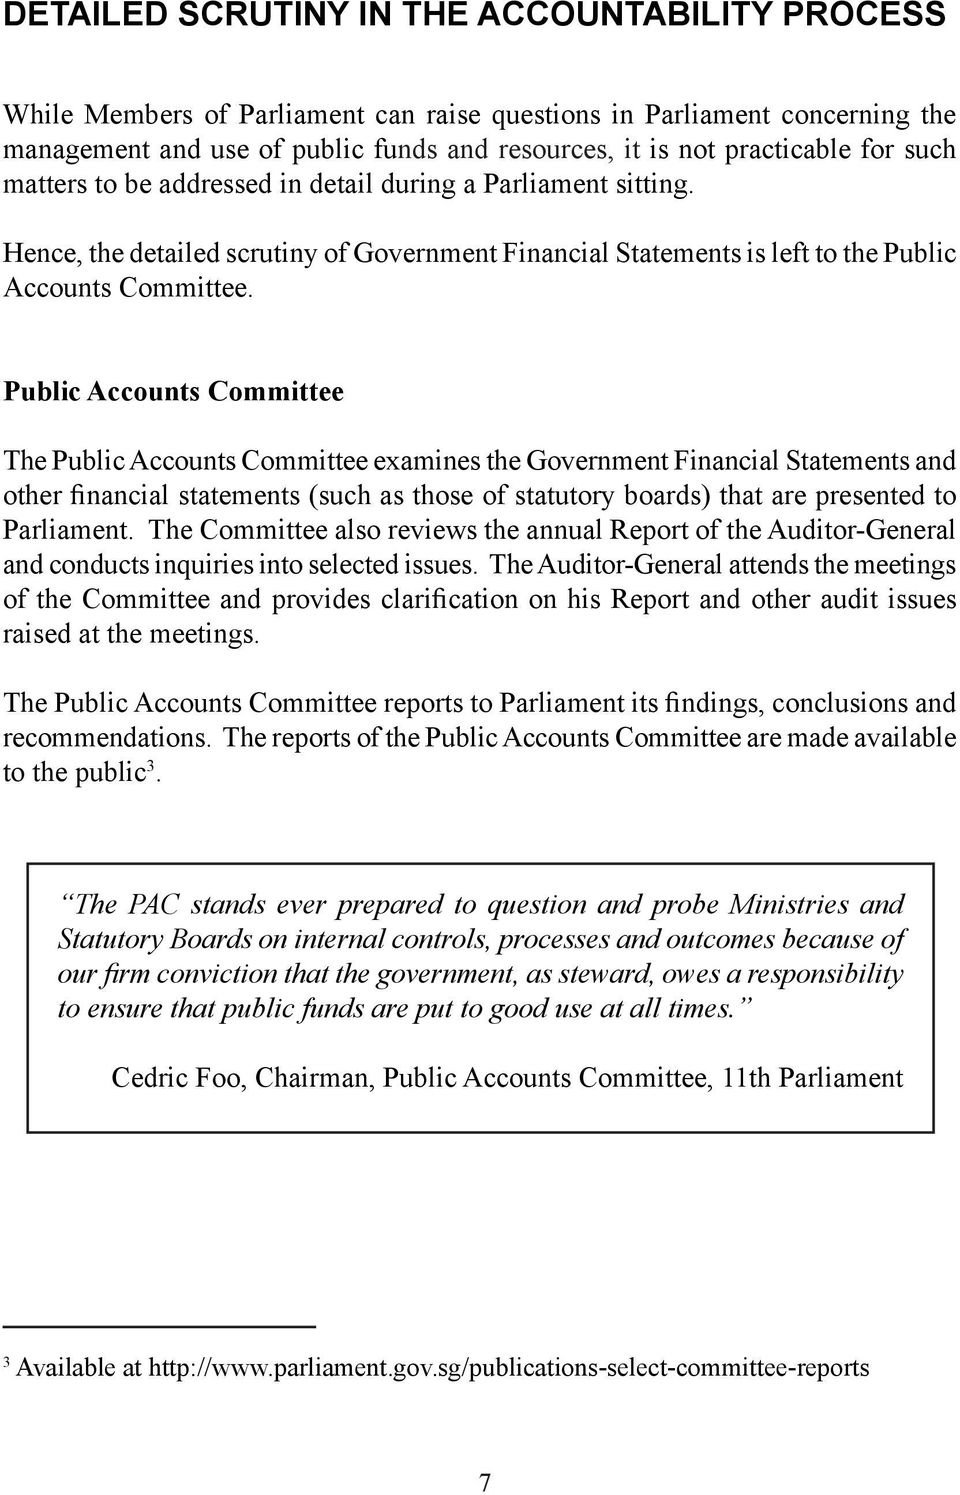 Public Accounts Committee The Public Accounts Committee examines the Government Financial Statements and other financial statements (such as those of statutory boards) that are presented to